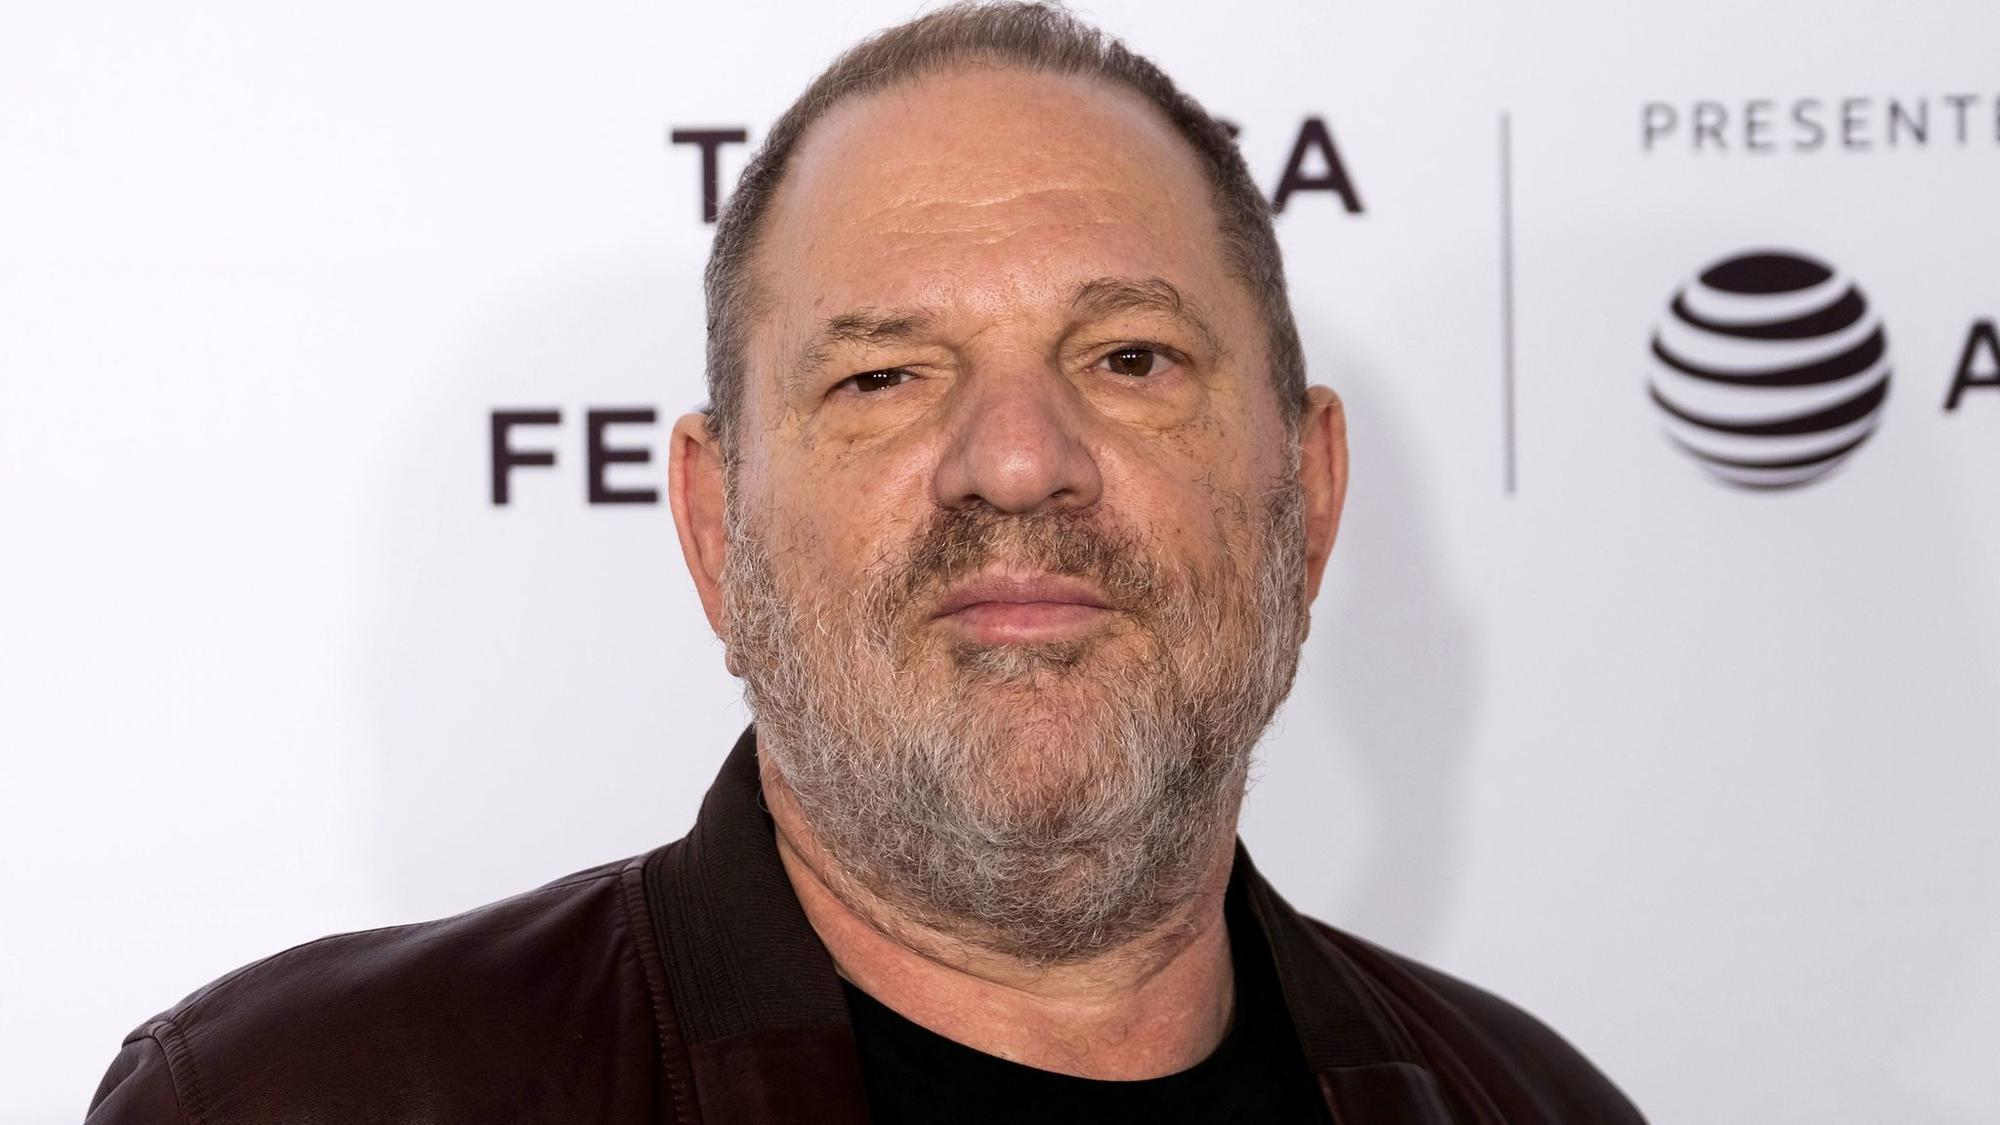 Weinstein scandal puts nondisclosure agreements in the spotlight